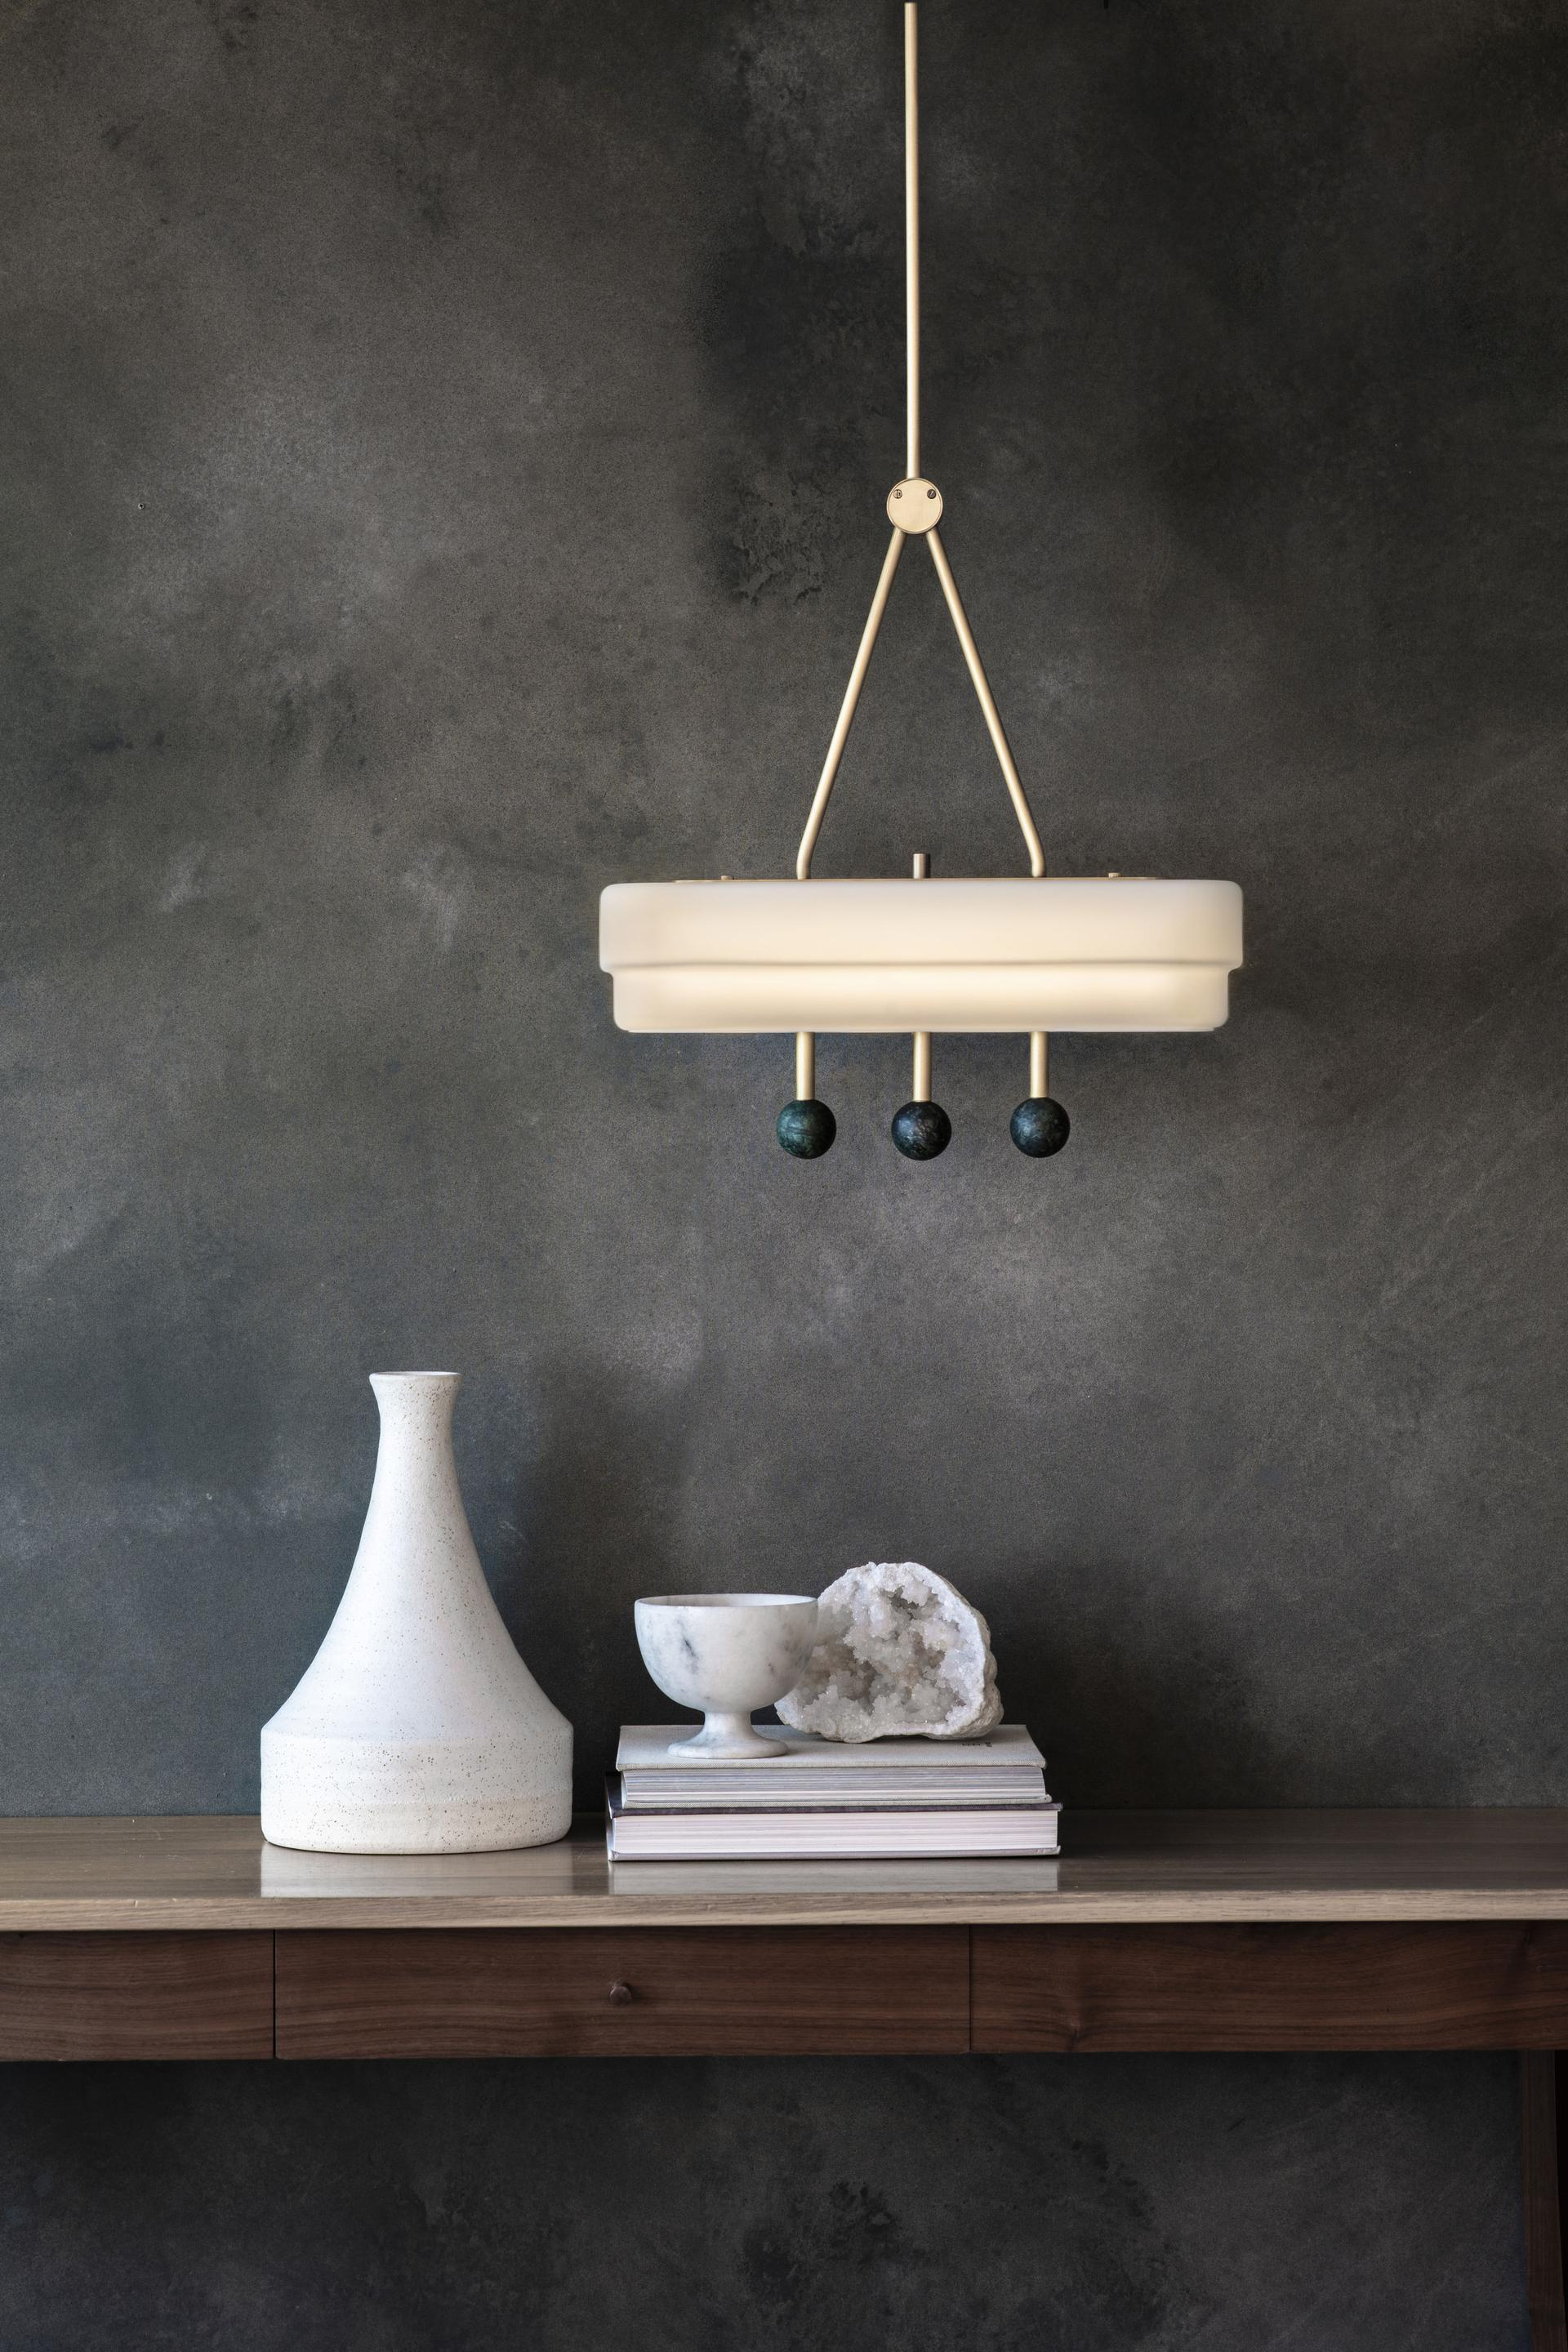 Spate Pendant Light - <p><span>Suspended from a single brass drop rod the Spate pendant produces a soft luxurious light through its stepped opal glass shade. Highlighted green or white marble orbs create an illuminated focal point.</span></p>  | Matter of Stuff